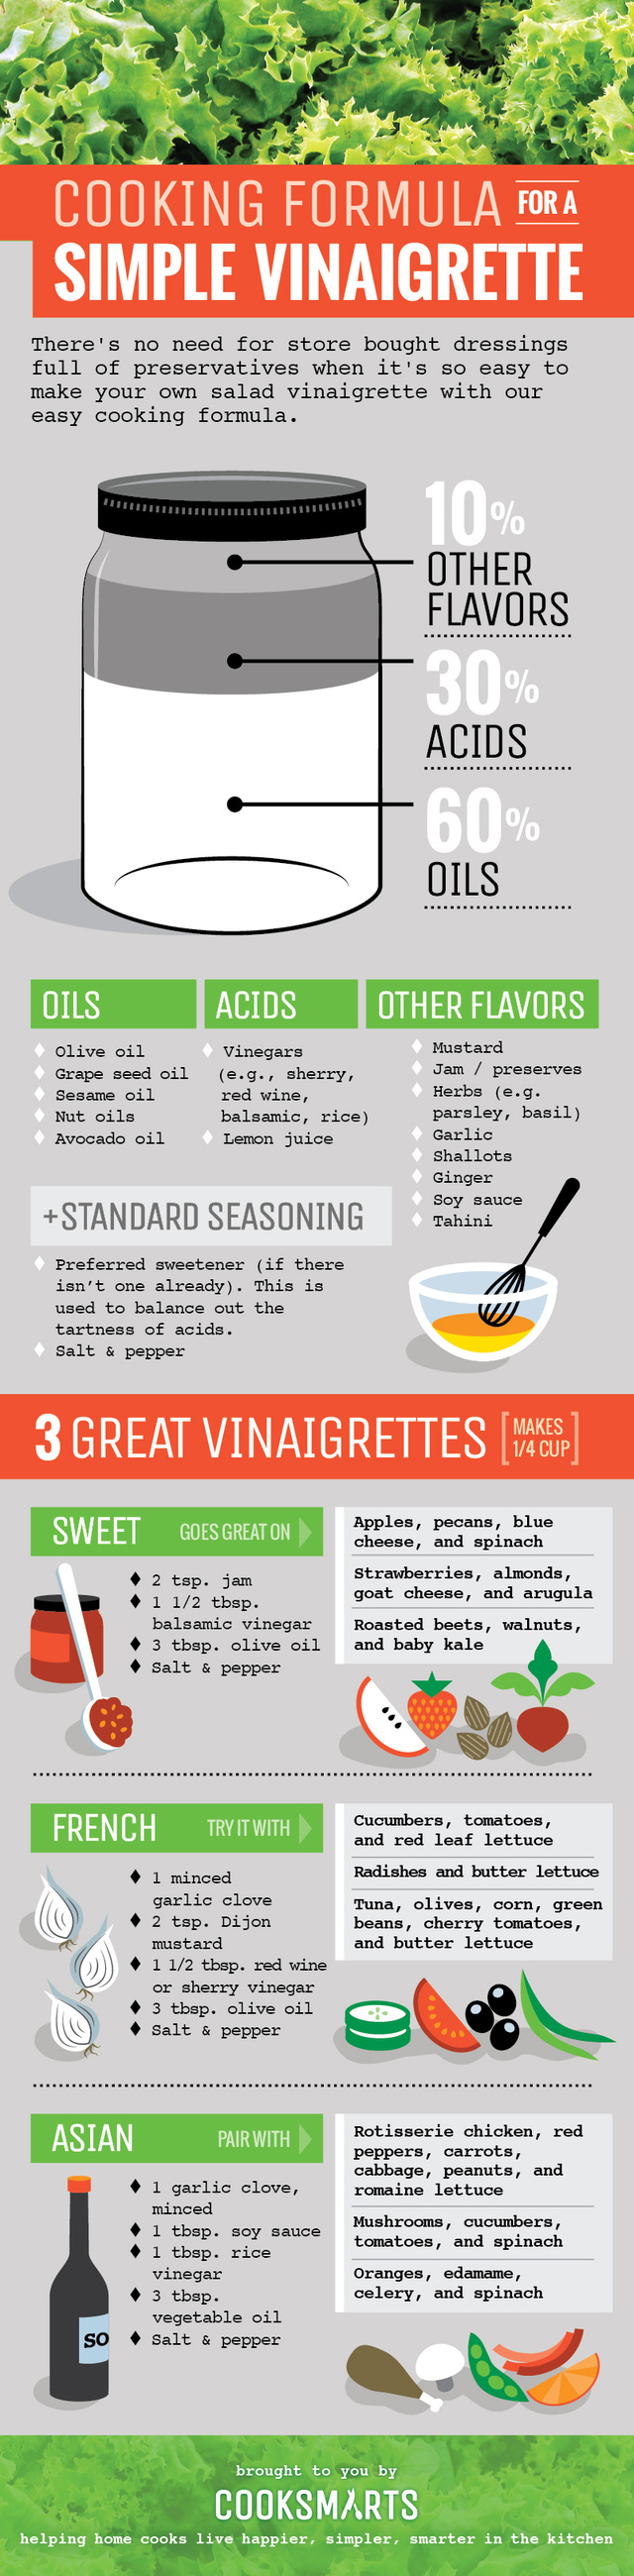 Simple Vinaigrette Infographic